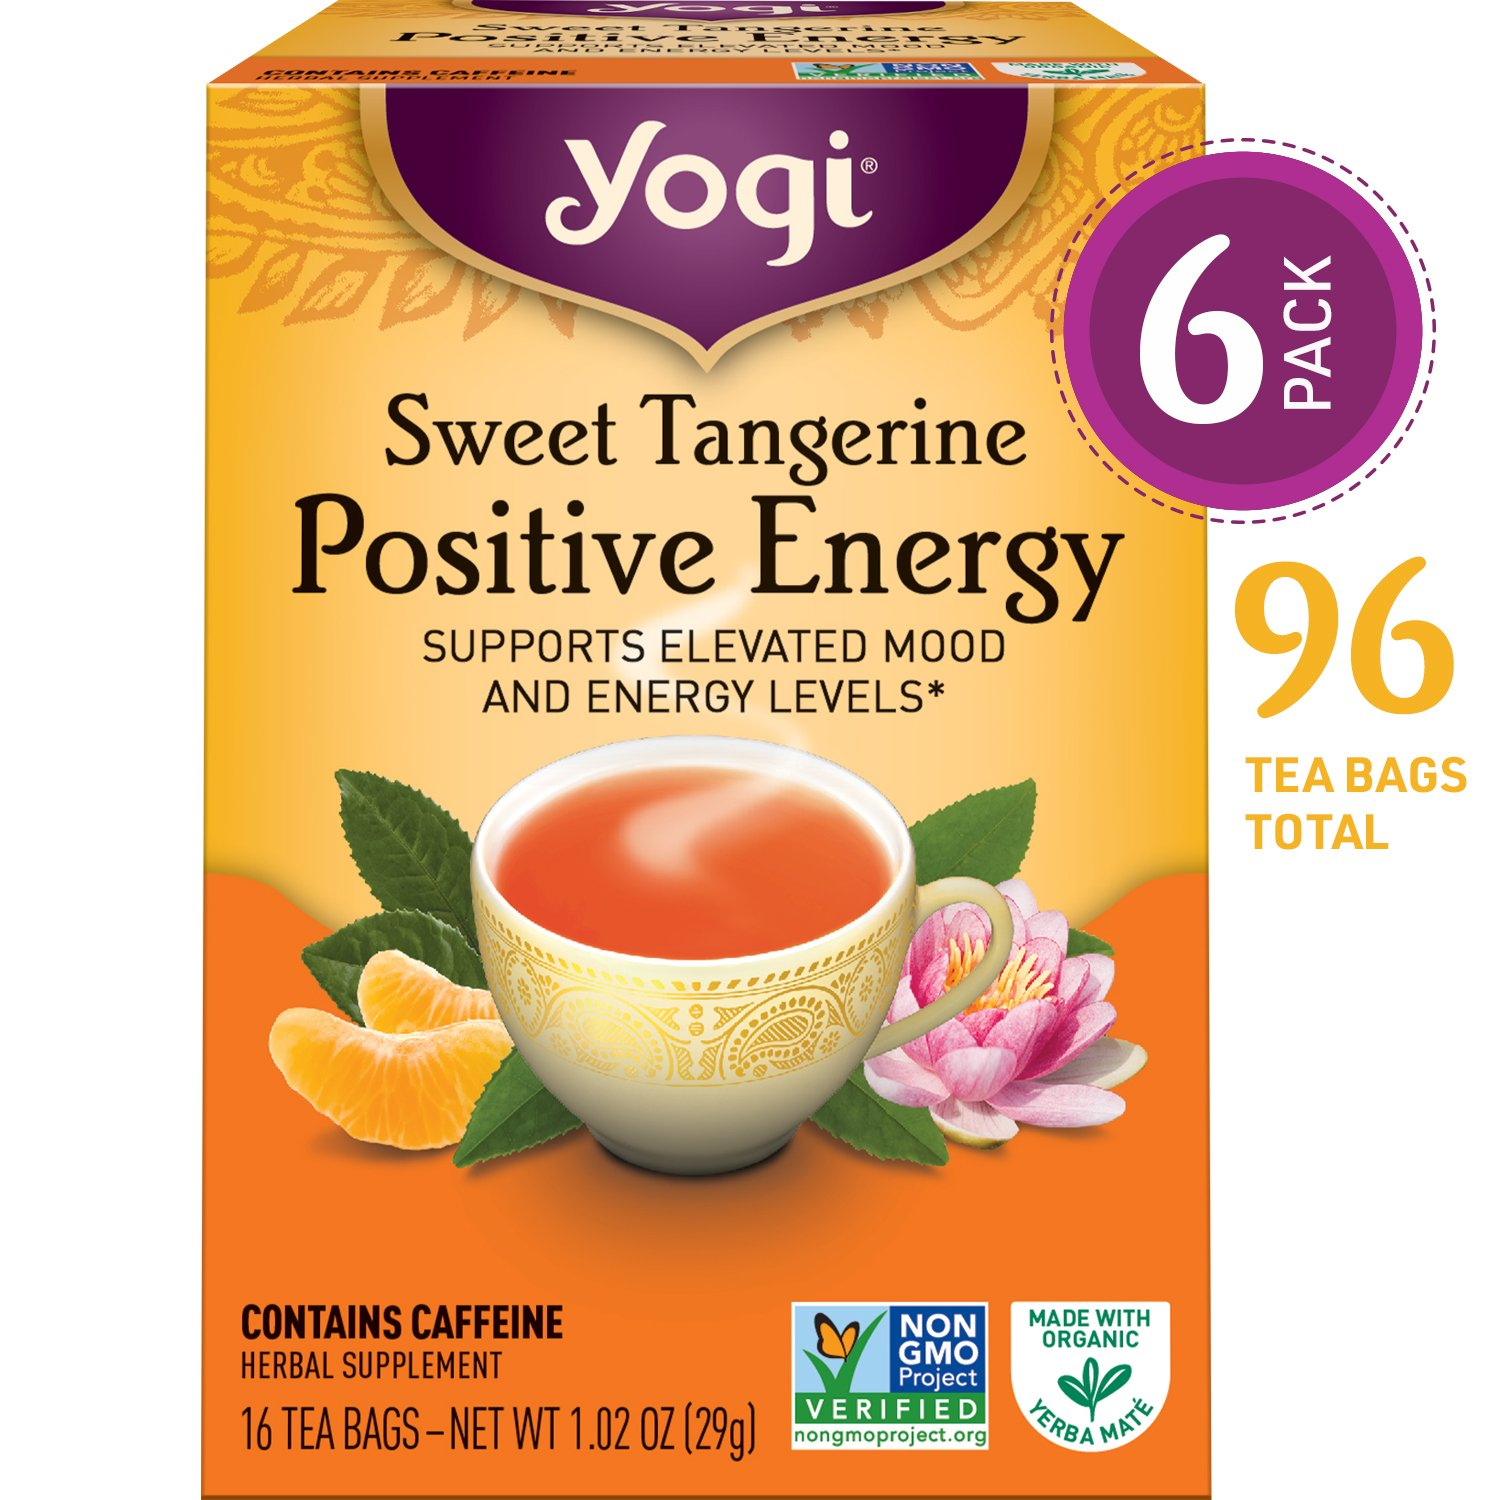 Supports Elevated Mood and Energy Levels - 6 Pack, 96 Tea Bags Total